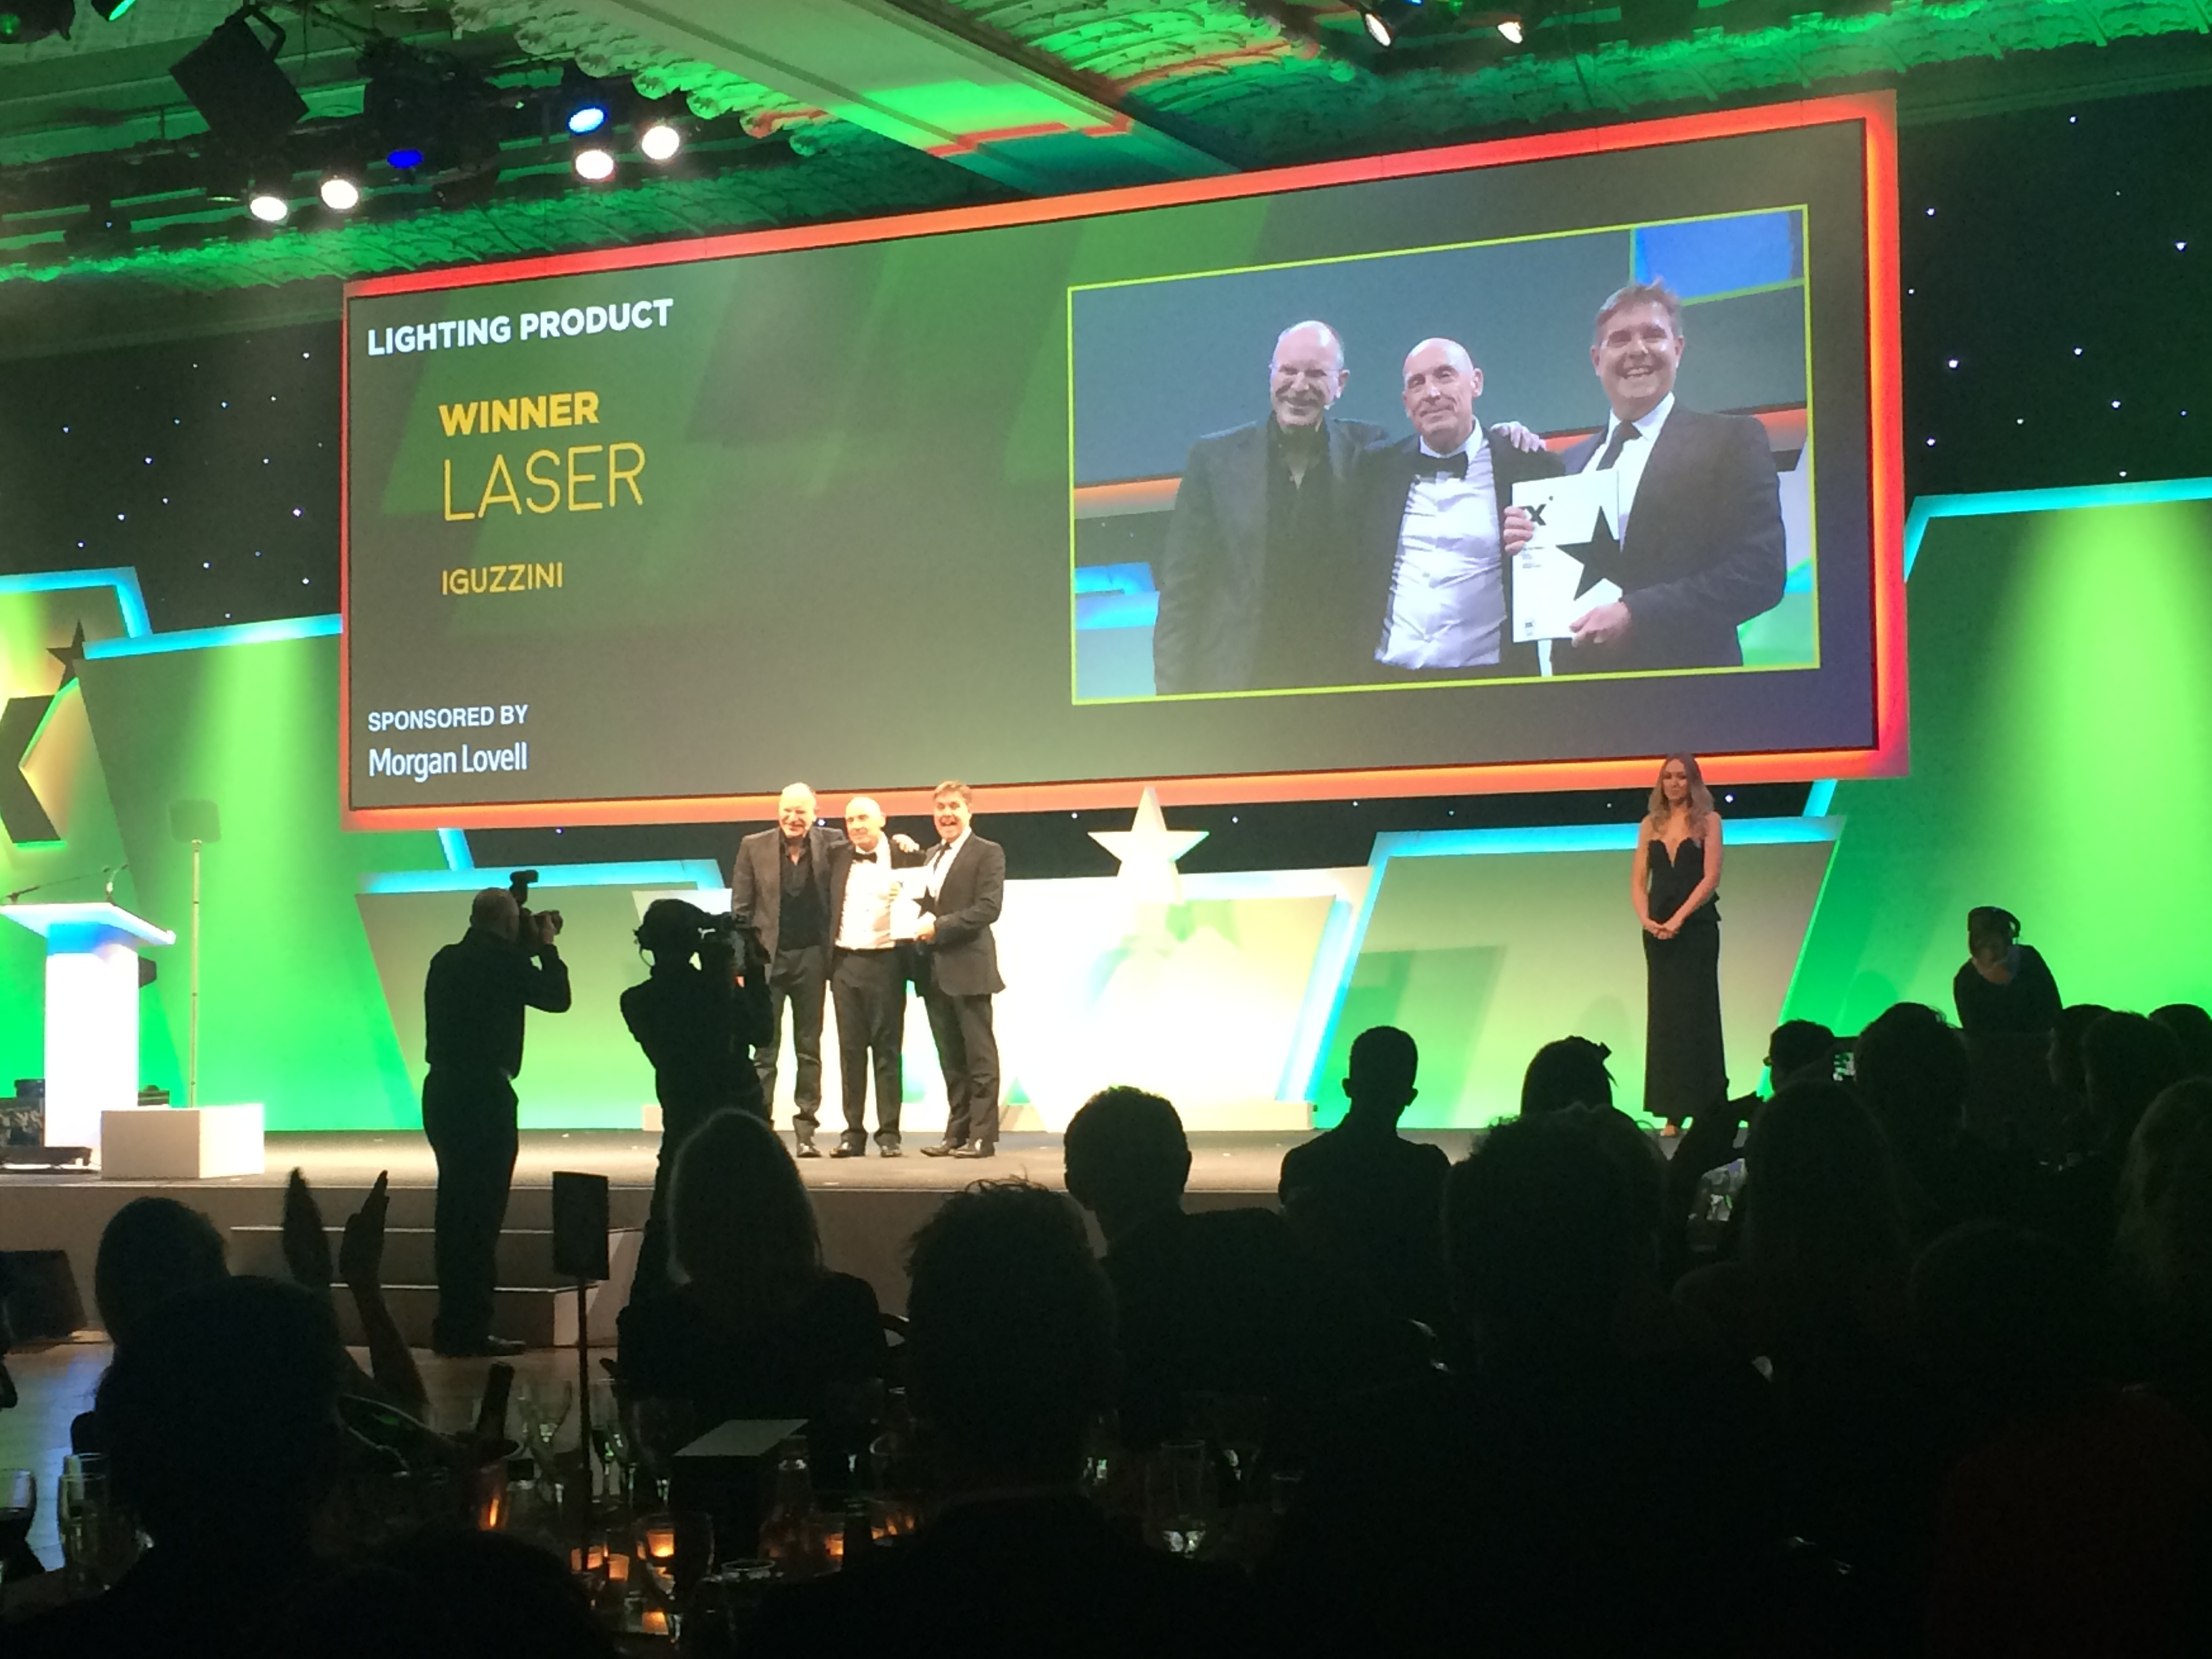 Laser won the Lighting Product category at the 2016 edition of the FX Awards